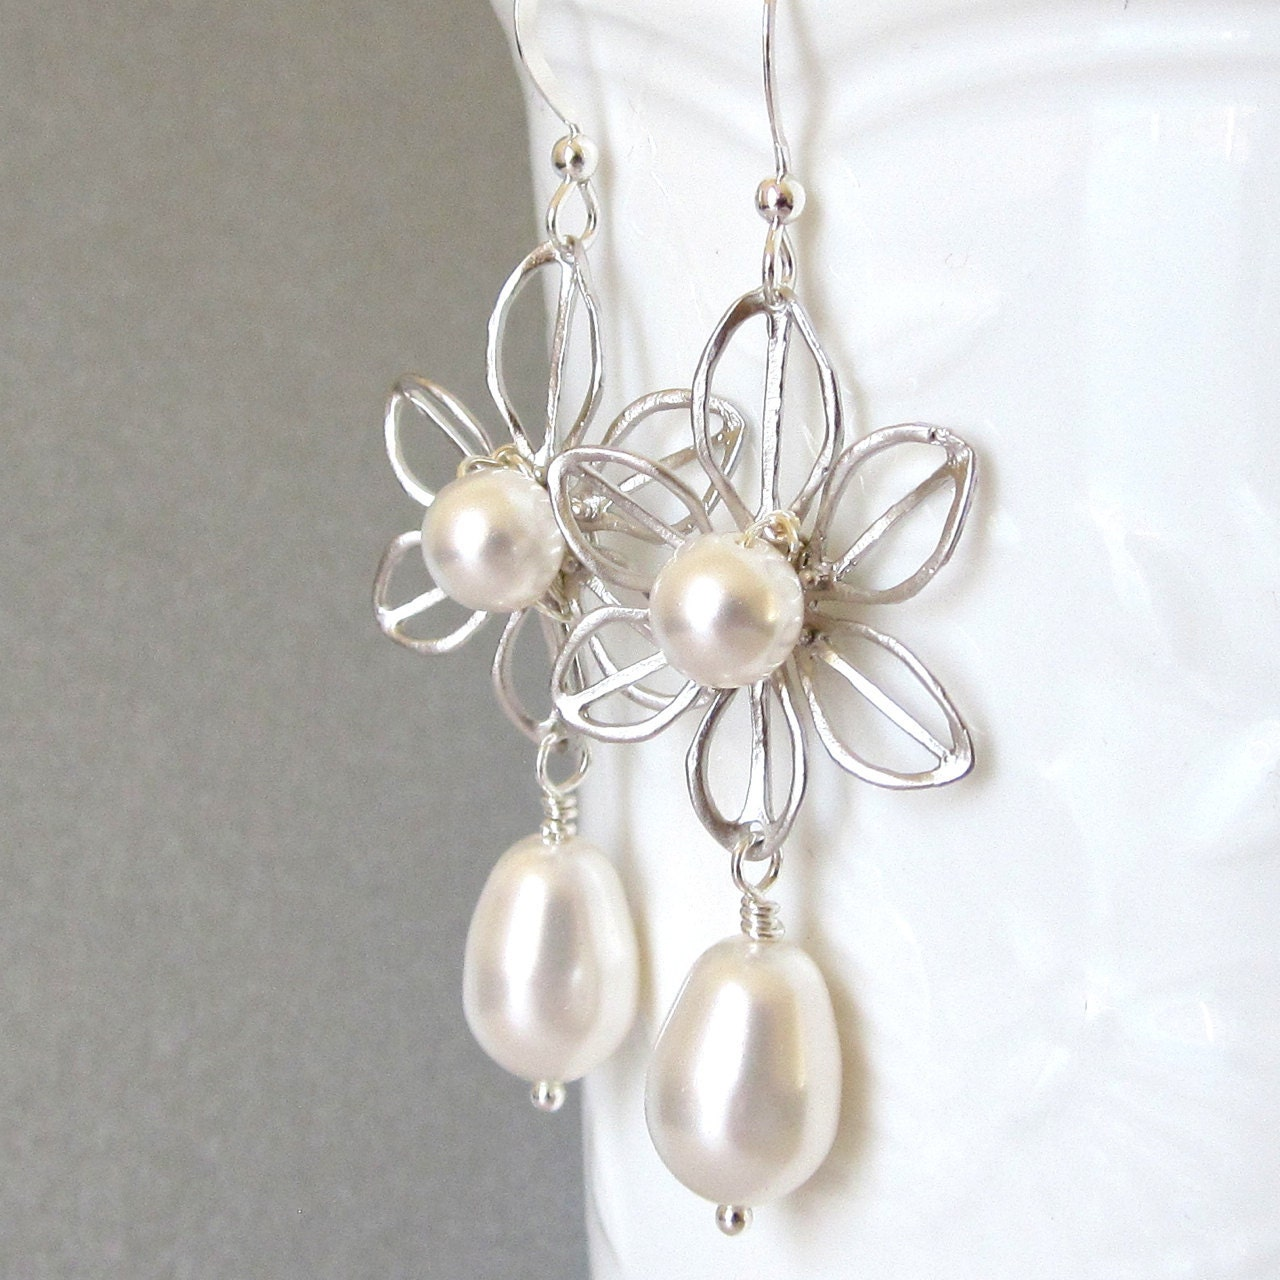 Daisy bridal earrings pearl drop